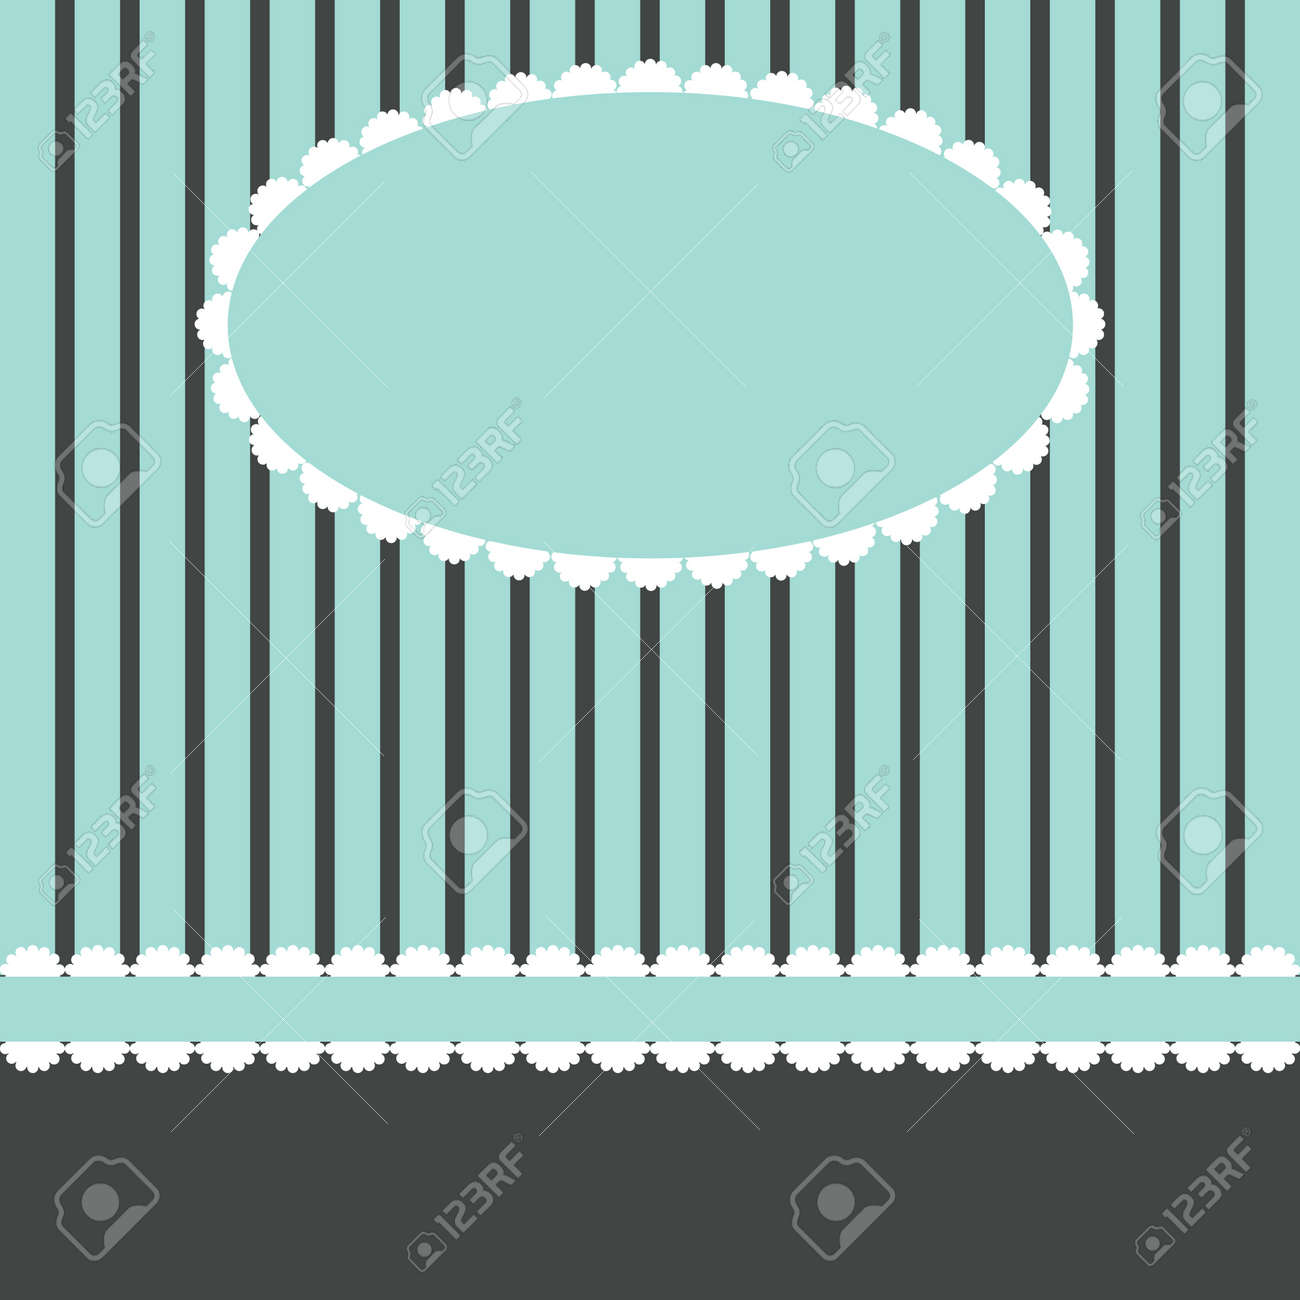 Greeting card template design Stock Vector - 17811543